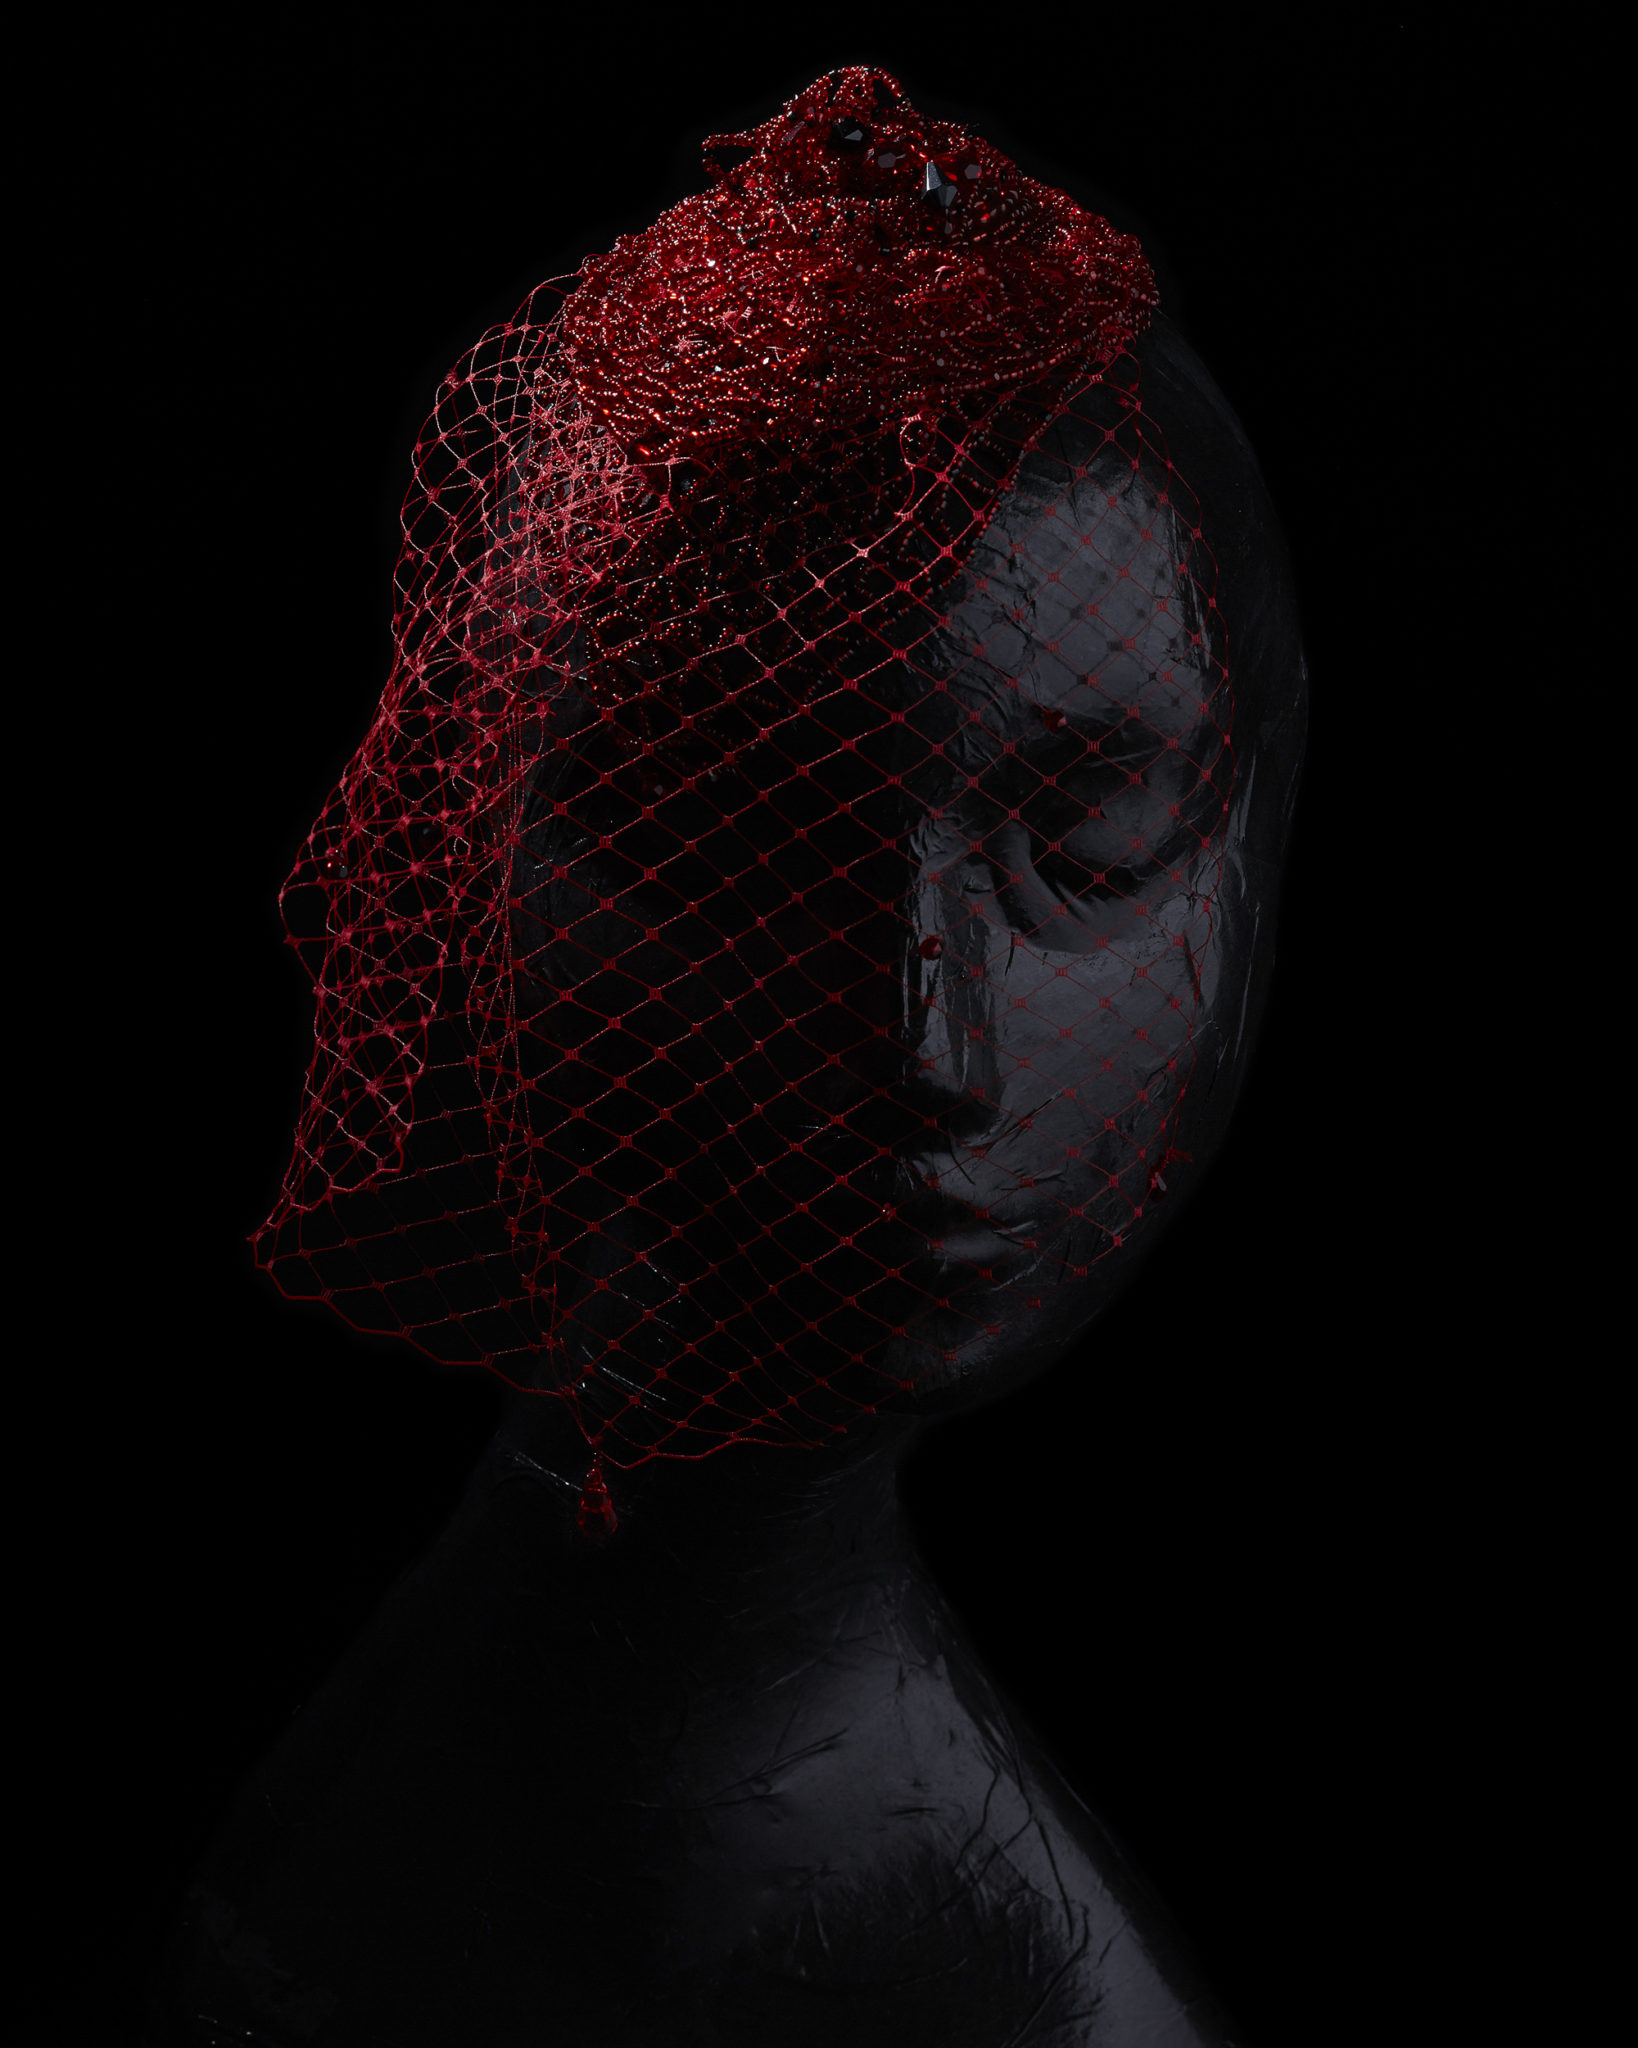 red beaded net hair piece and veil on a somber black mannequin on a black background